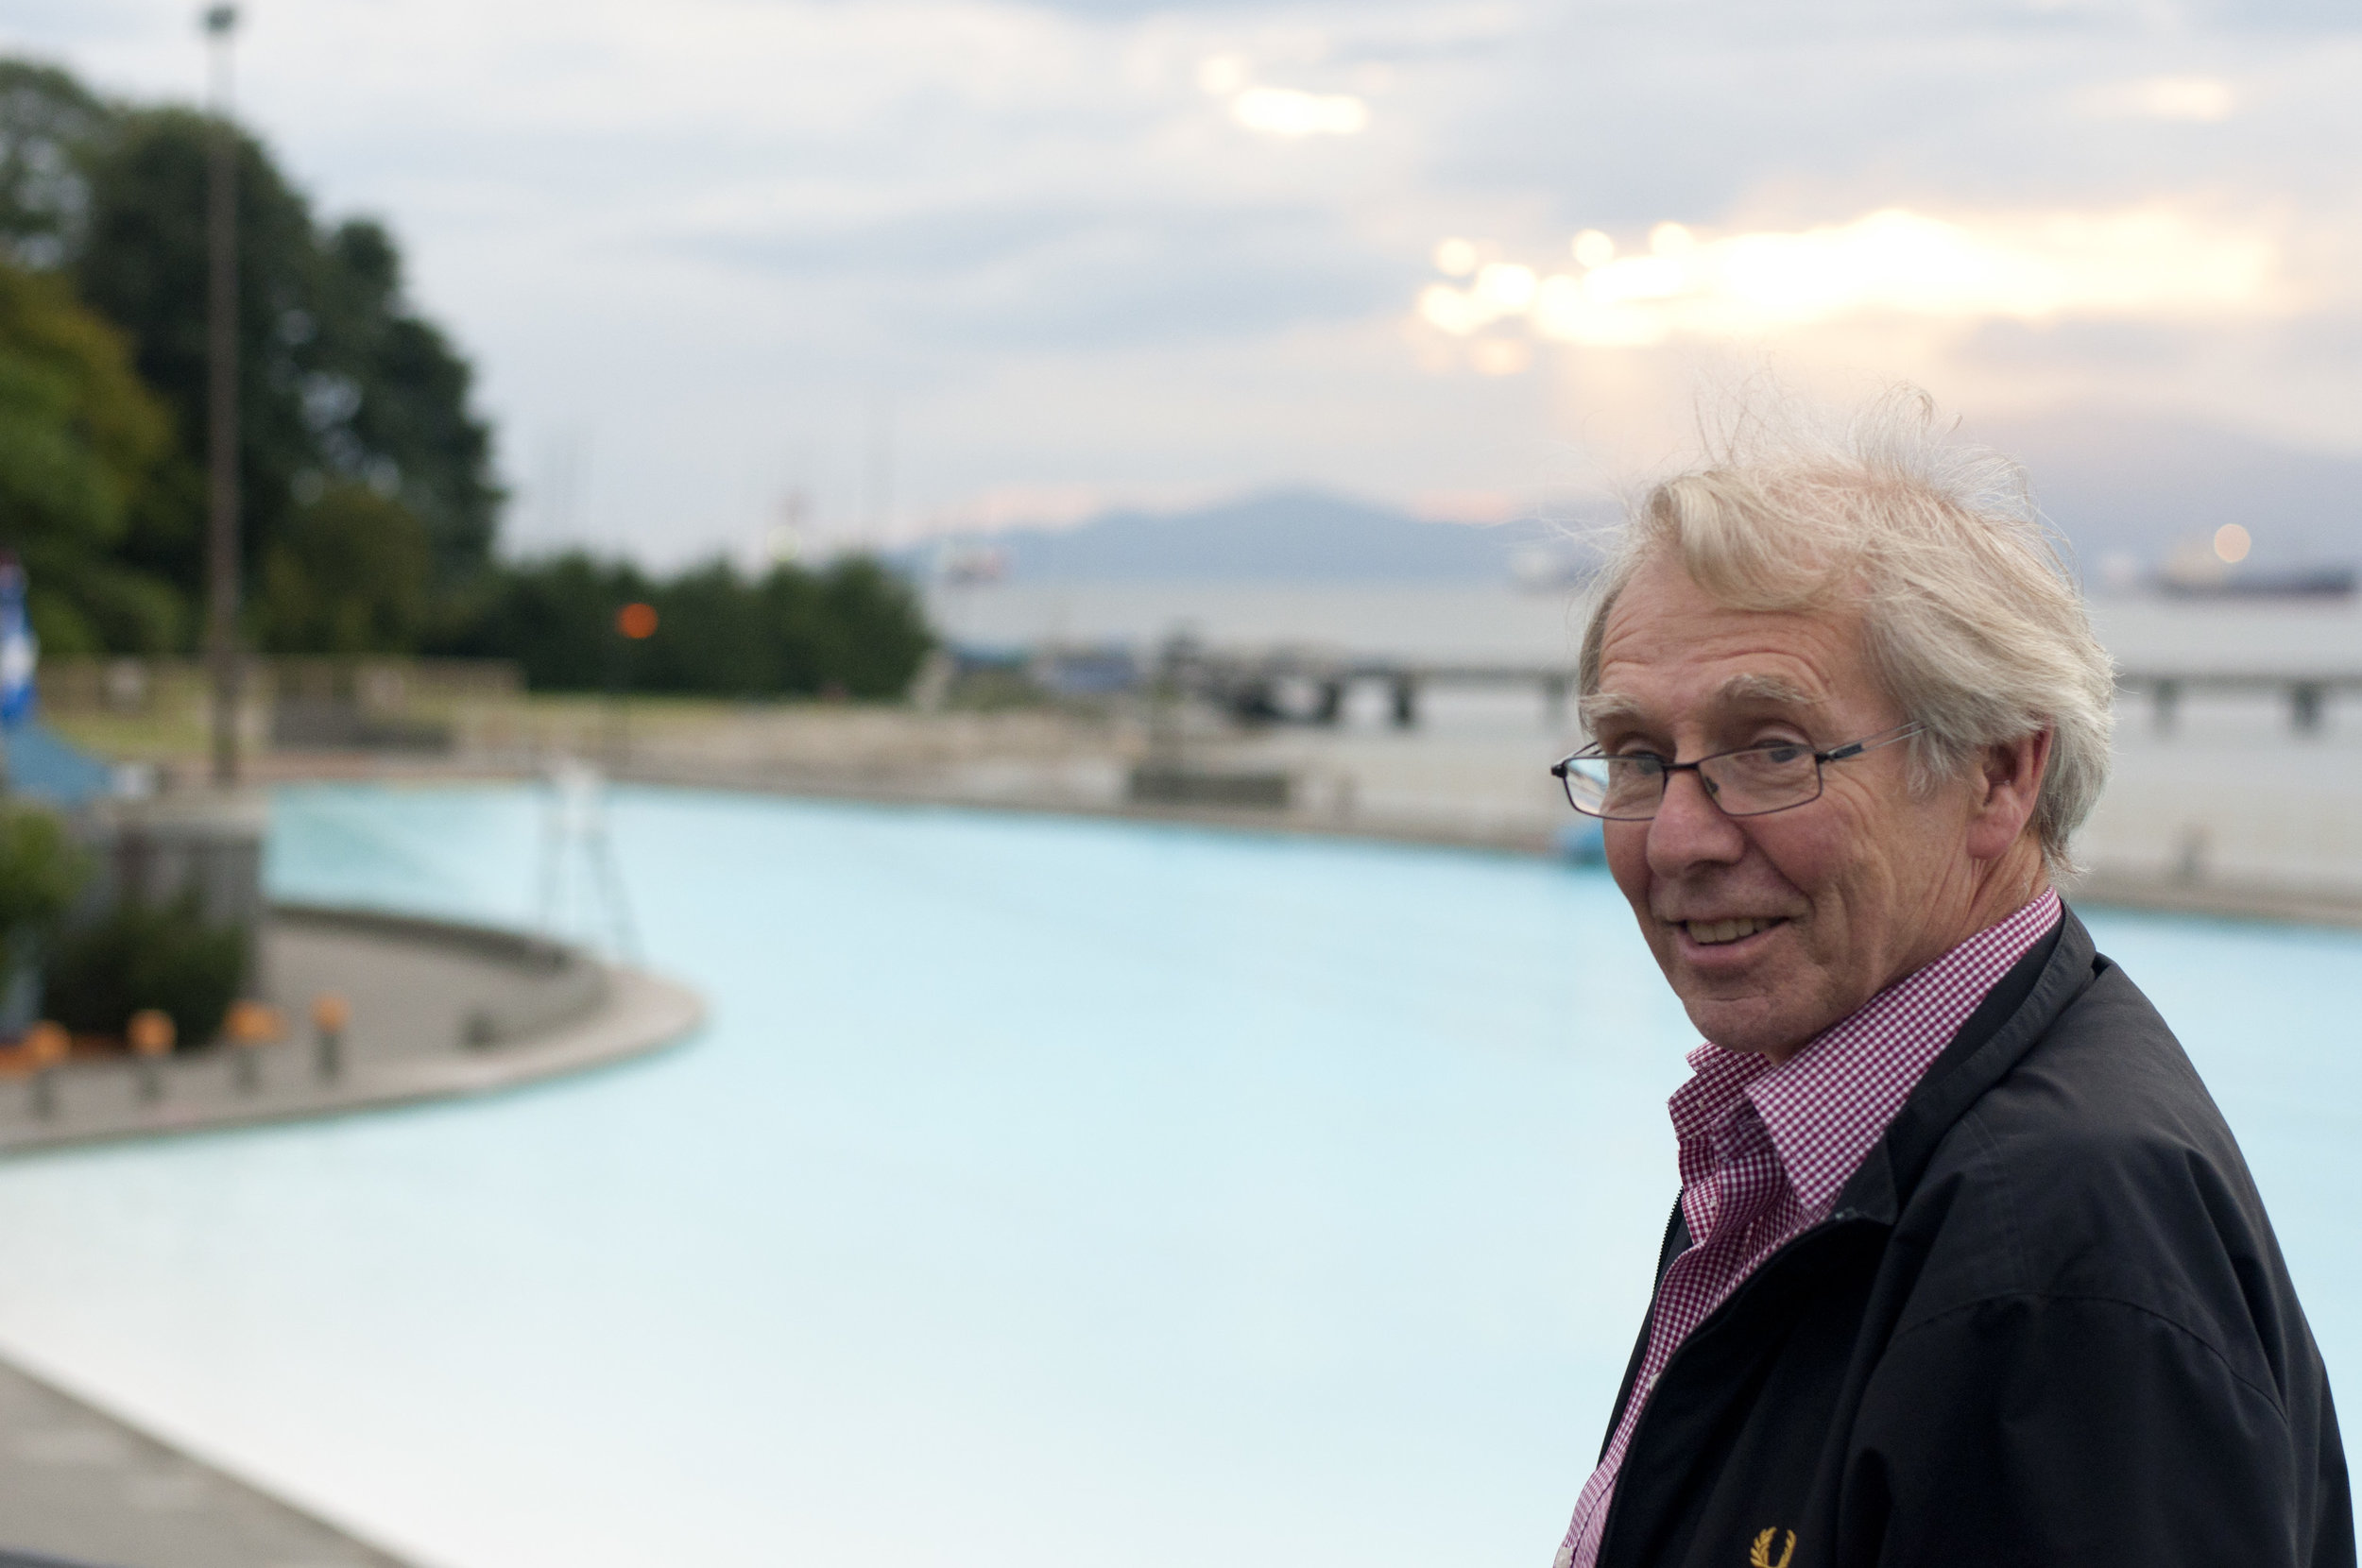 John Bingham , of Bingham + Hill Architects, was the project architect for the pool's renovation